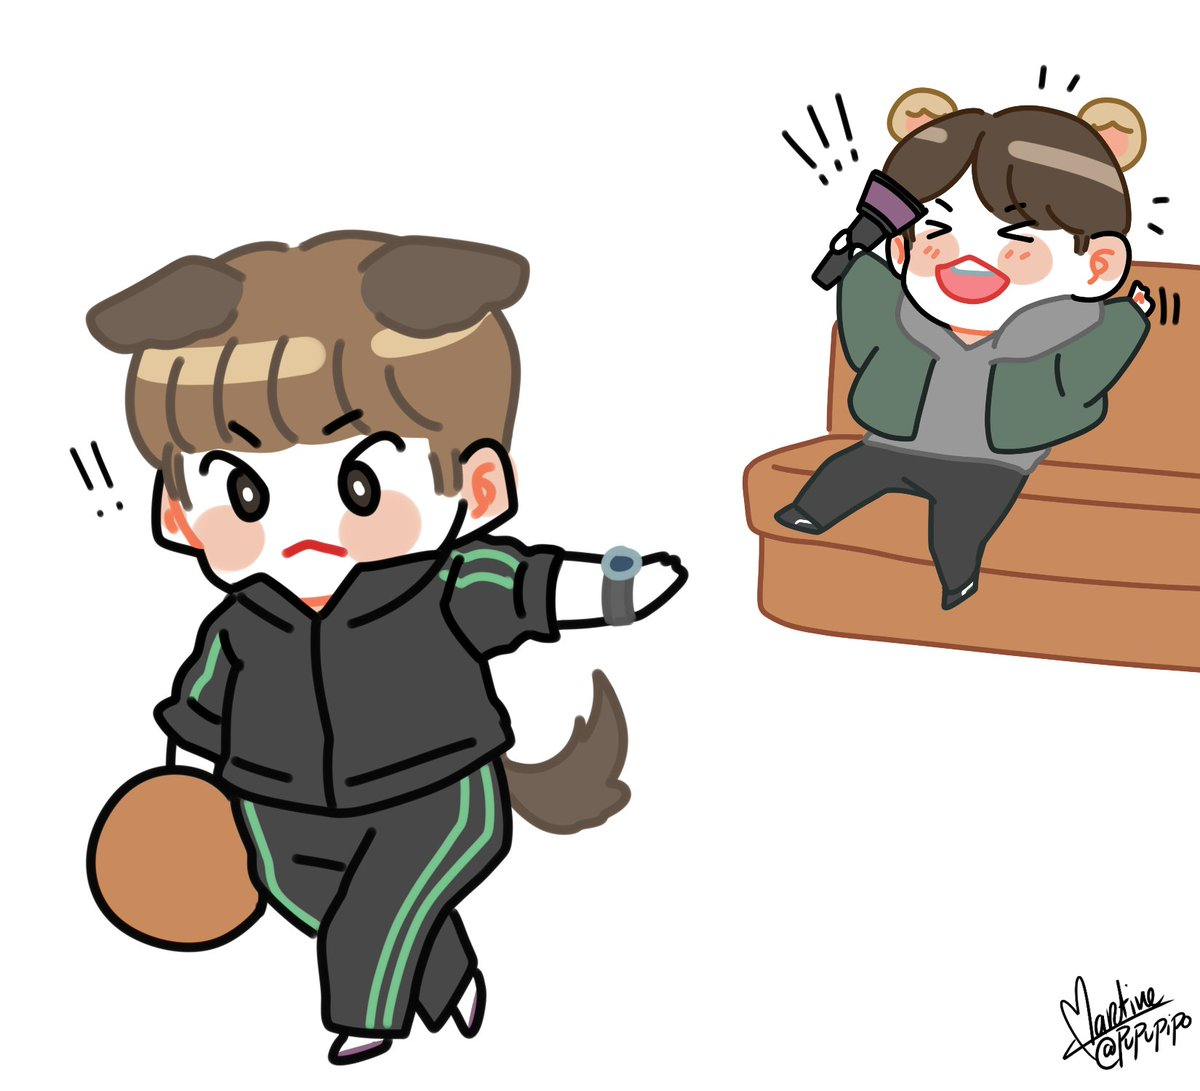 RT @pupupipo: 🐶 & 🐹 ISAC cheering!!!!!  even if you don't win, you're a champion  #minhyuk #민혁 #kihyun #기현 https://t.co/7AviDUuPCx